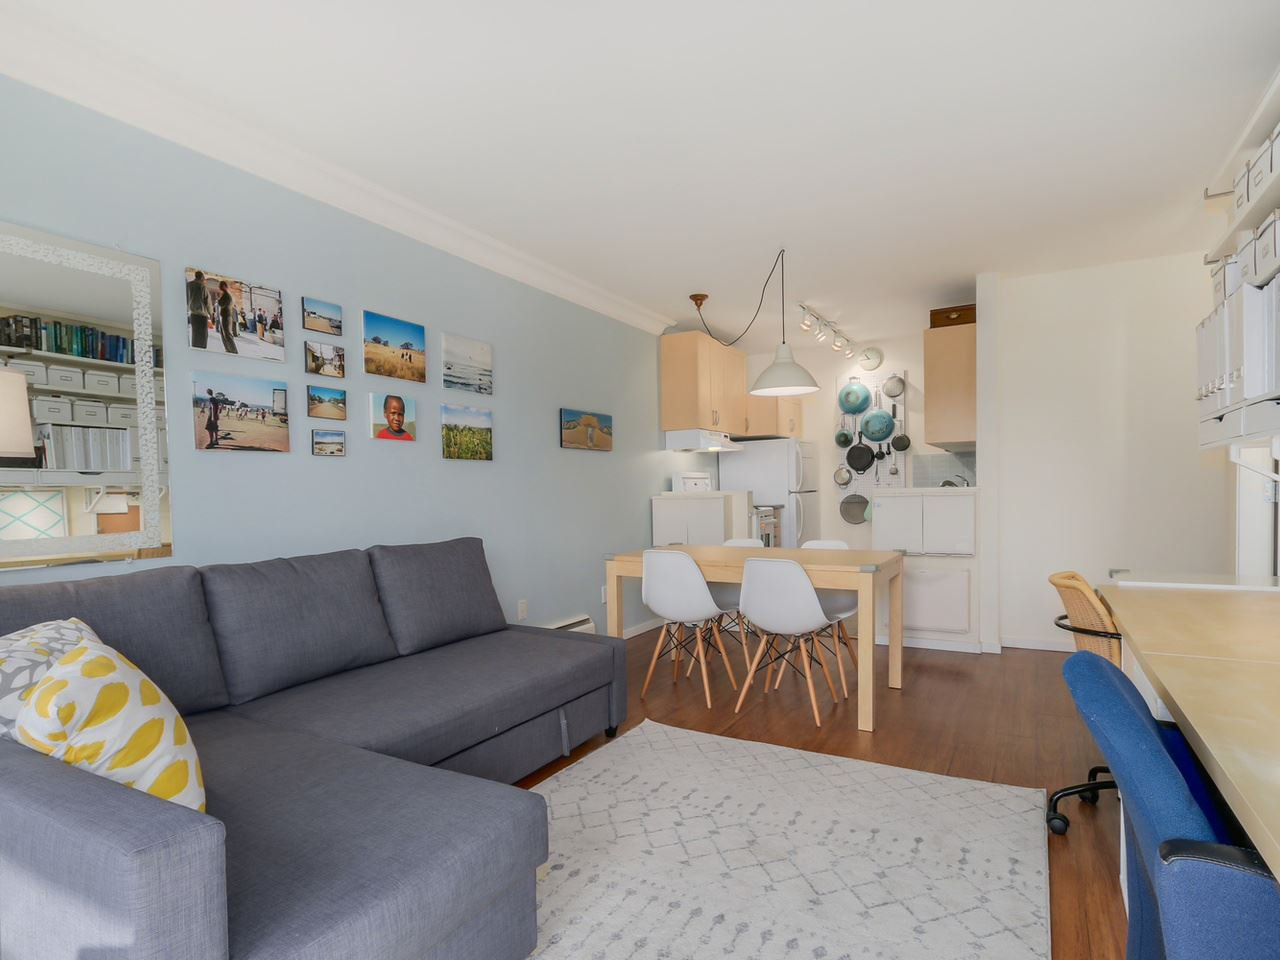 Main Photo: 310 2033 W 7TH AVENUE in Vancouver: Kitsilano Condo for sale (Vancouver West)  : MLS®# R2041215